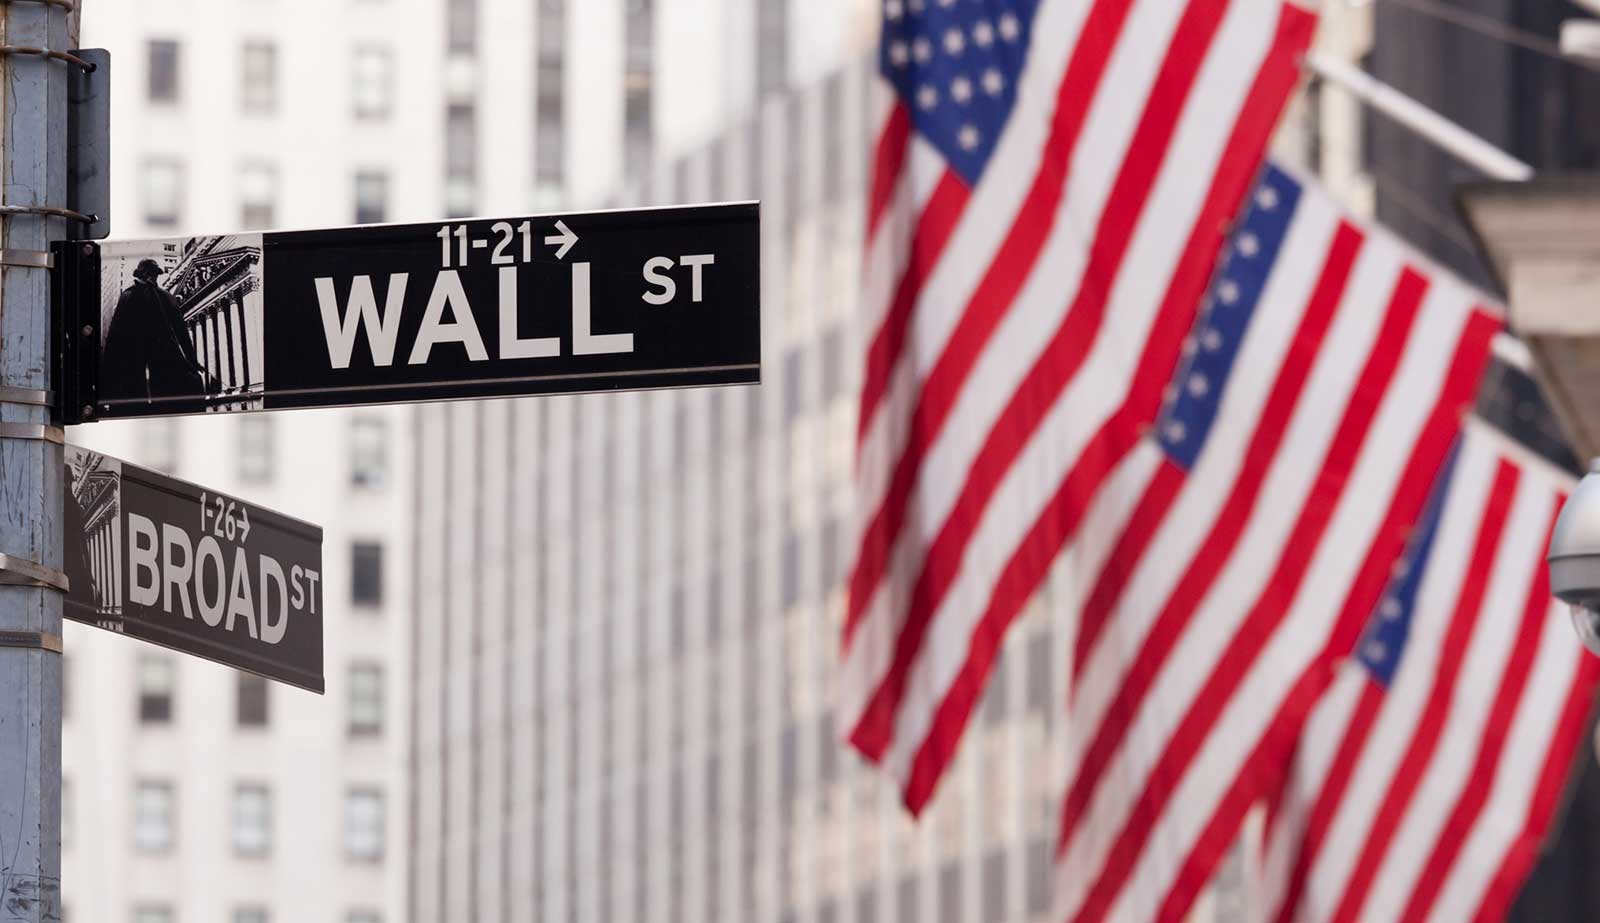 Wall st and US flags